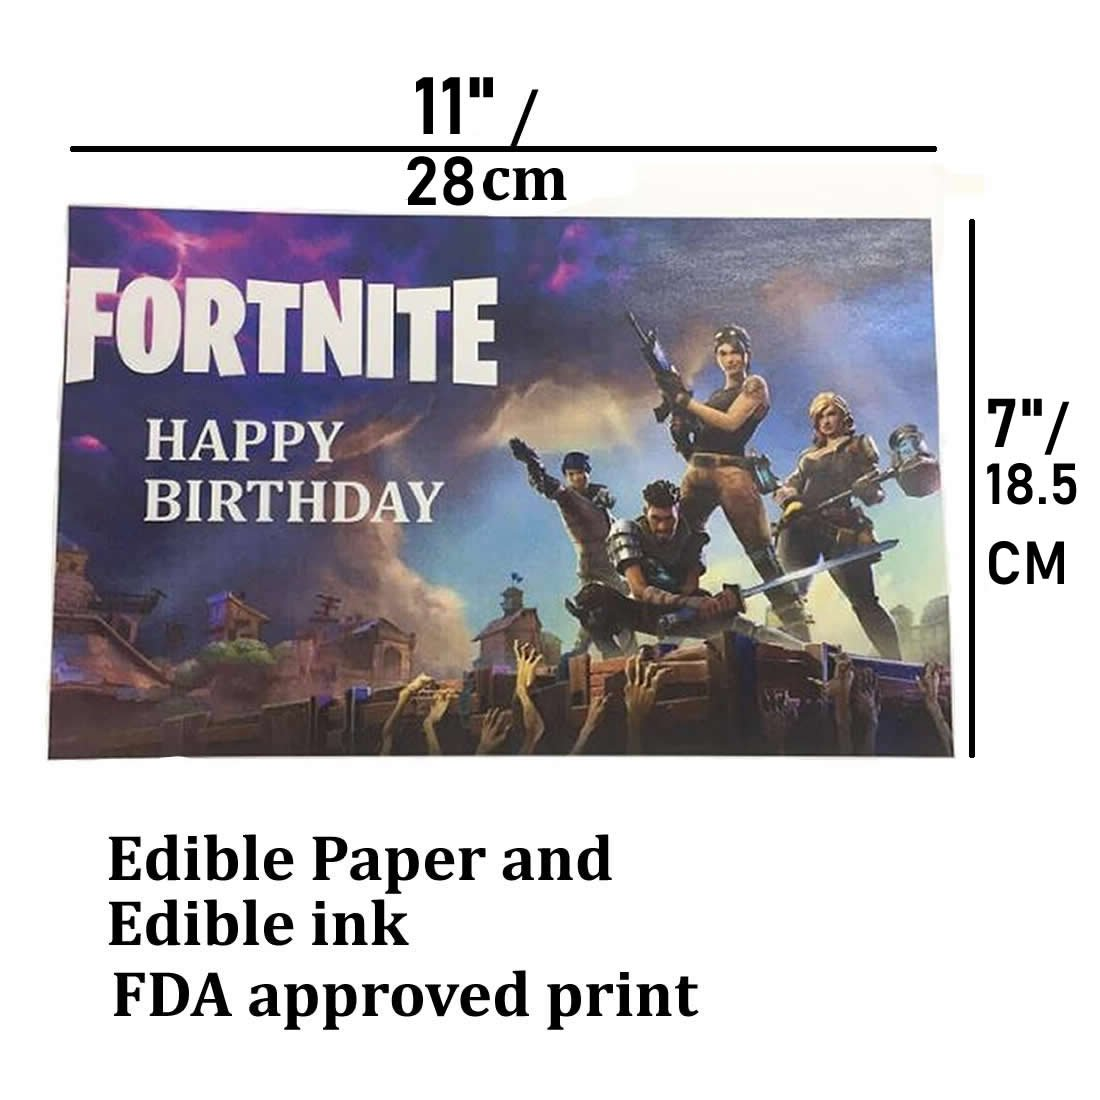 GEORLD Fortnite Battle Edible Image Cake Topper 1/4 Sheet Birthday Party Decoration,NO NAME Printed by GEORLD (Image #2)